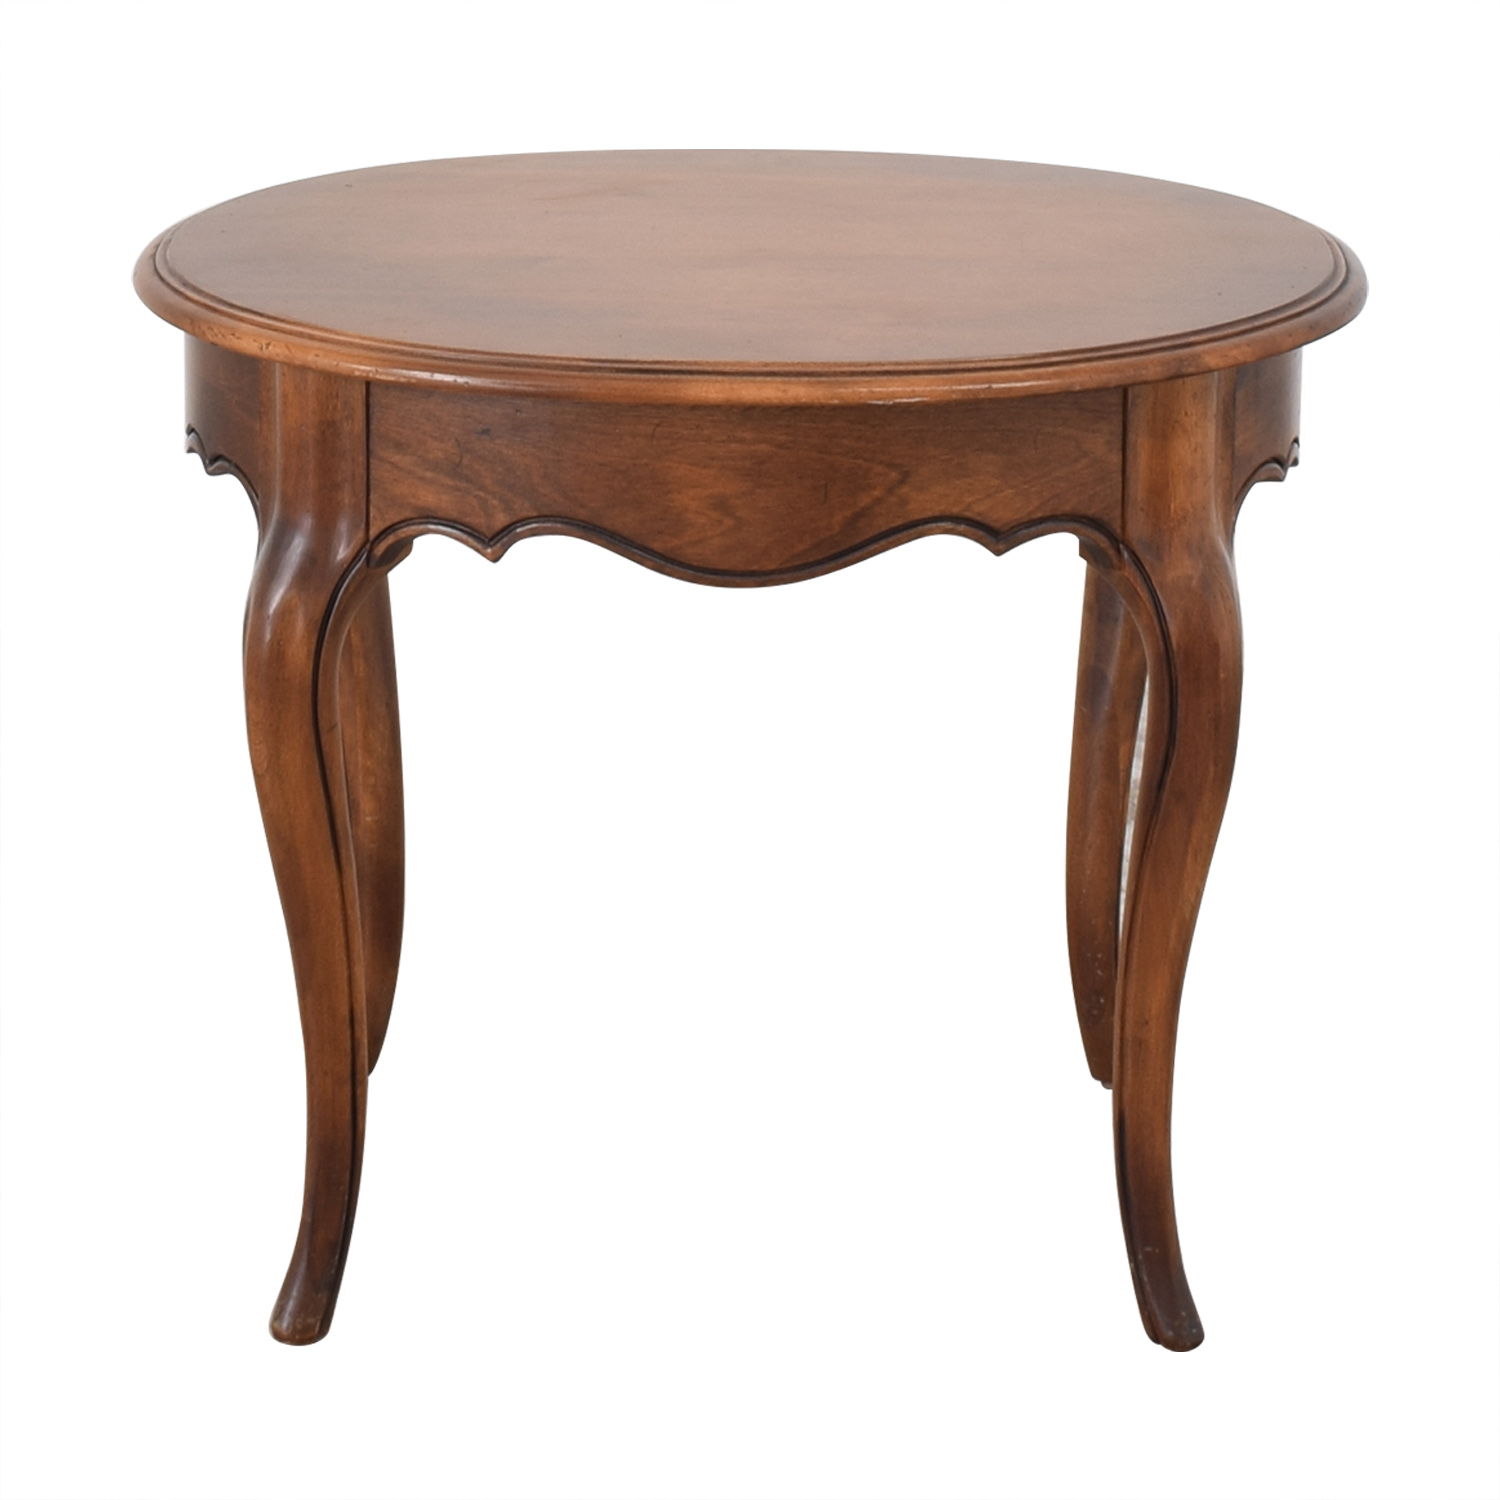 Ethan Allen Ethan Allen Oval End Table on sale